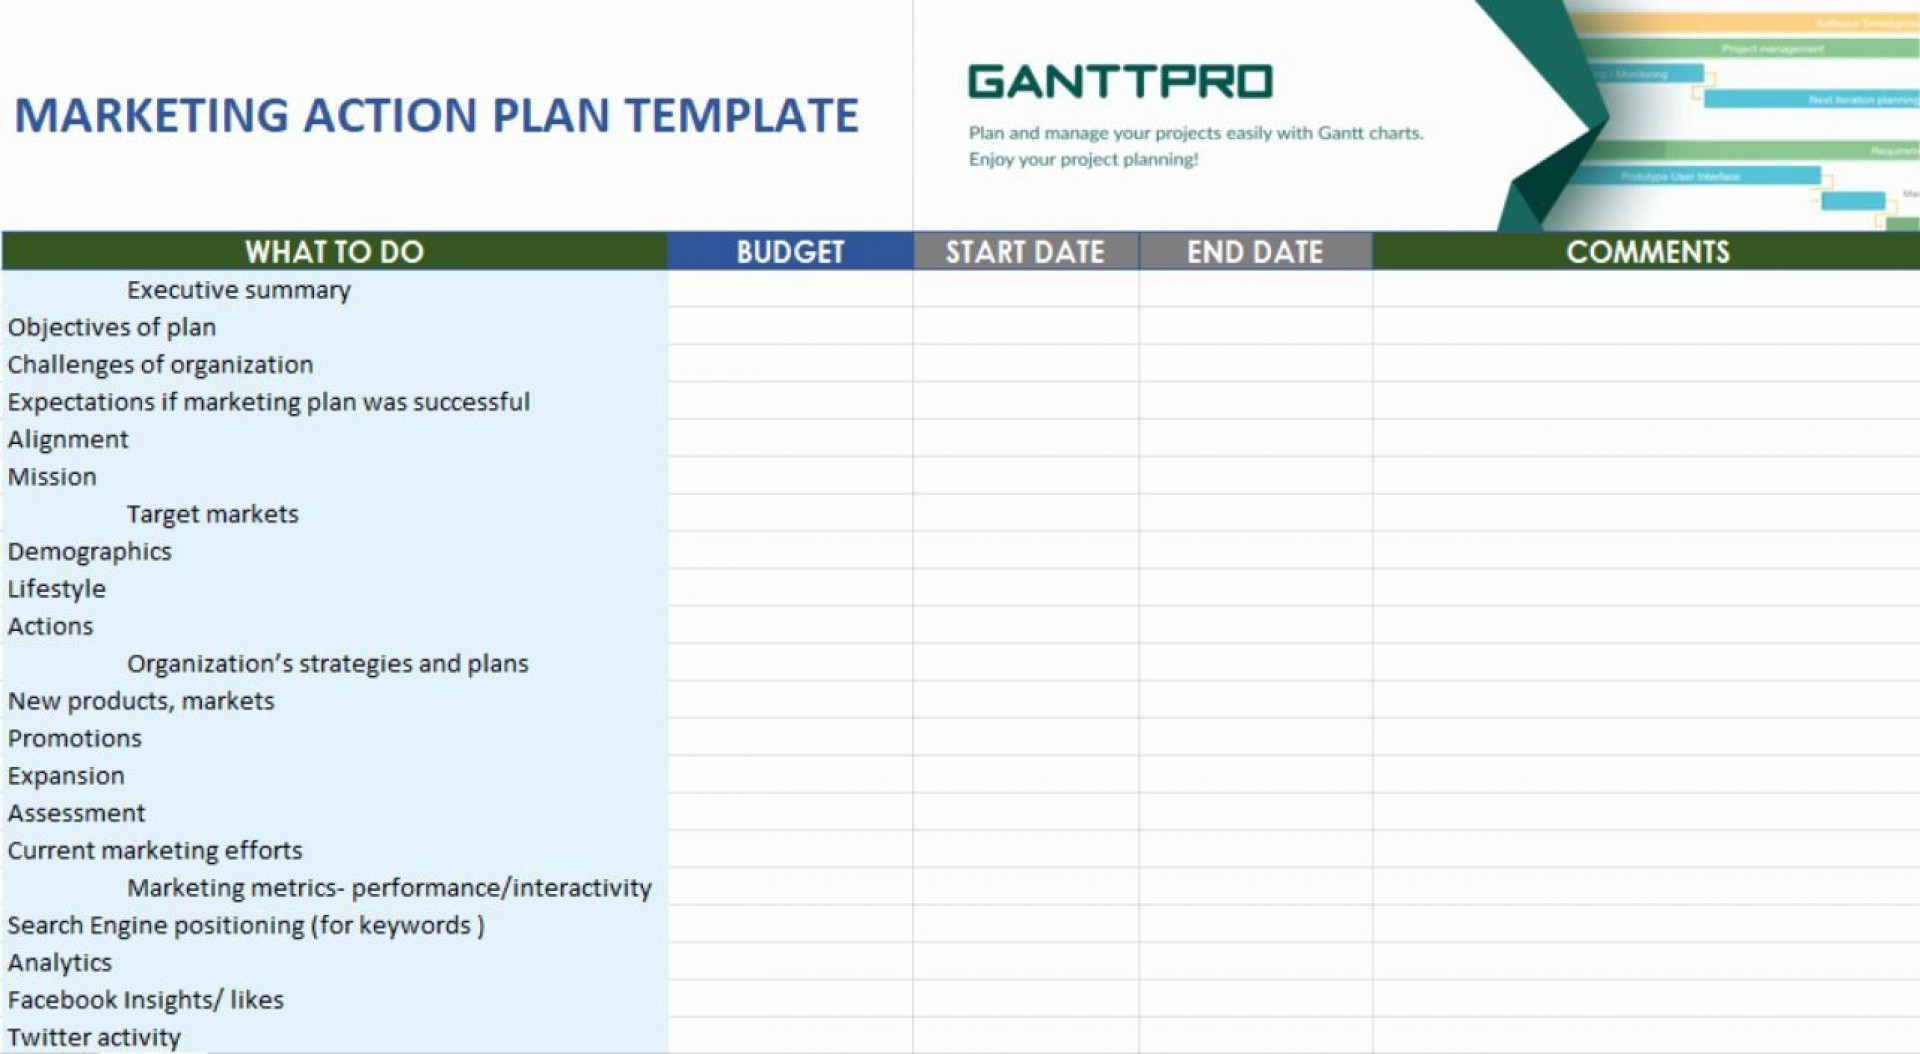 Marketing Action Plan Template Excel from www.addictionary.org